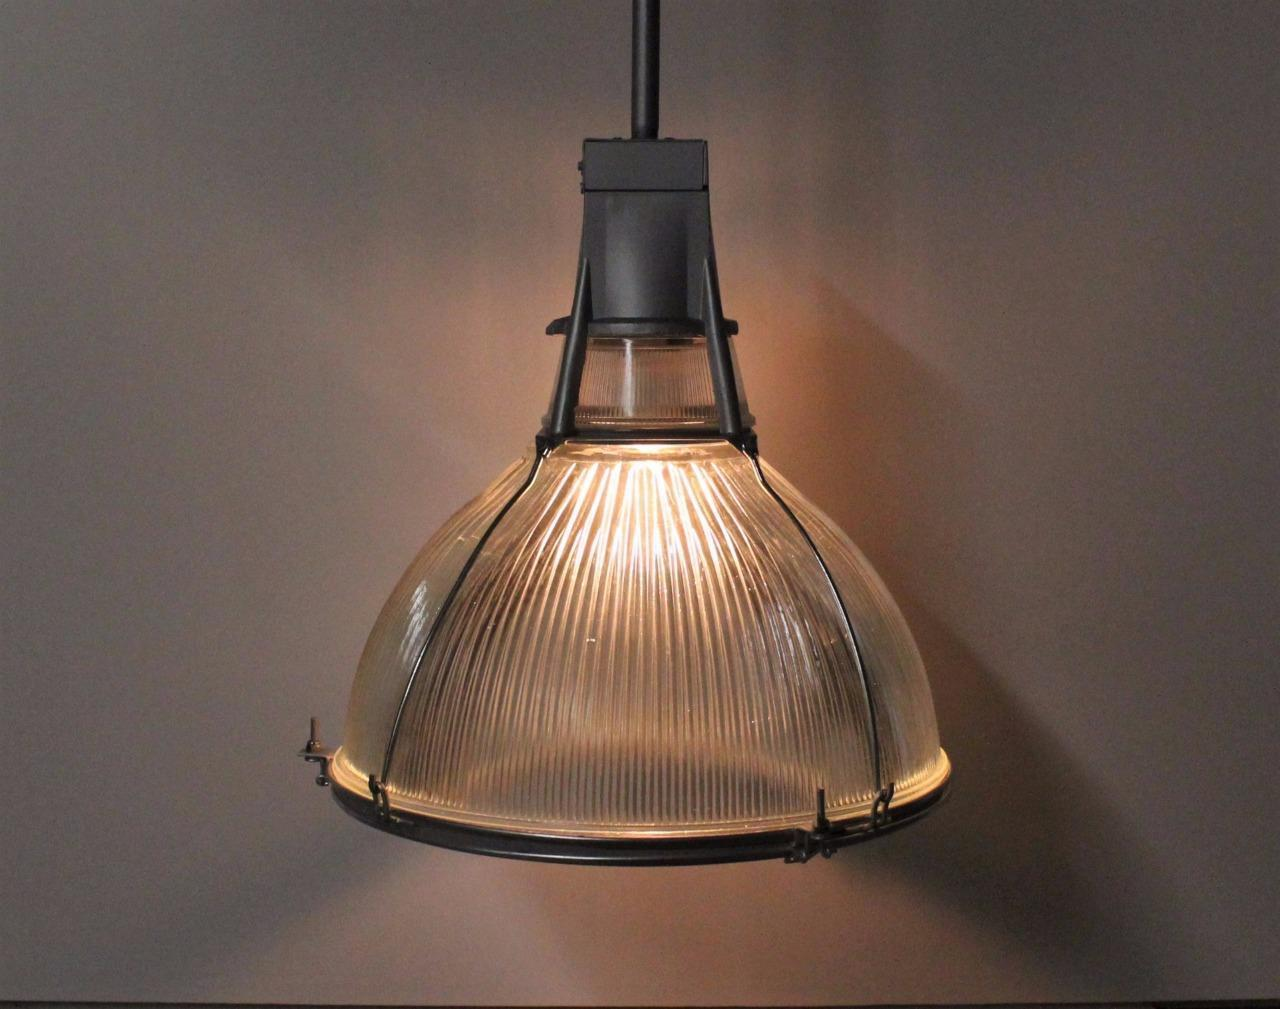 Best Selling Products Old School Warehouse Holophane Wiring Diagram Vintage Salvaged Industrial Glass Light Fixture